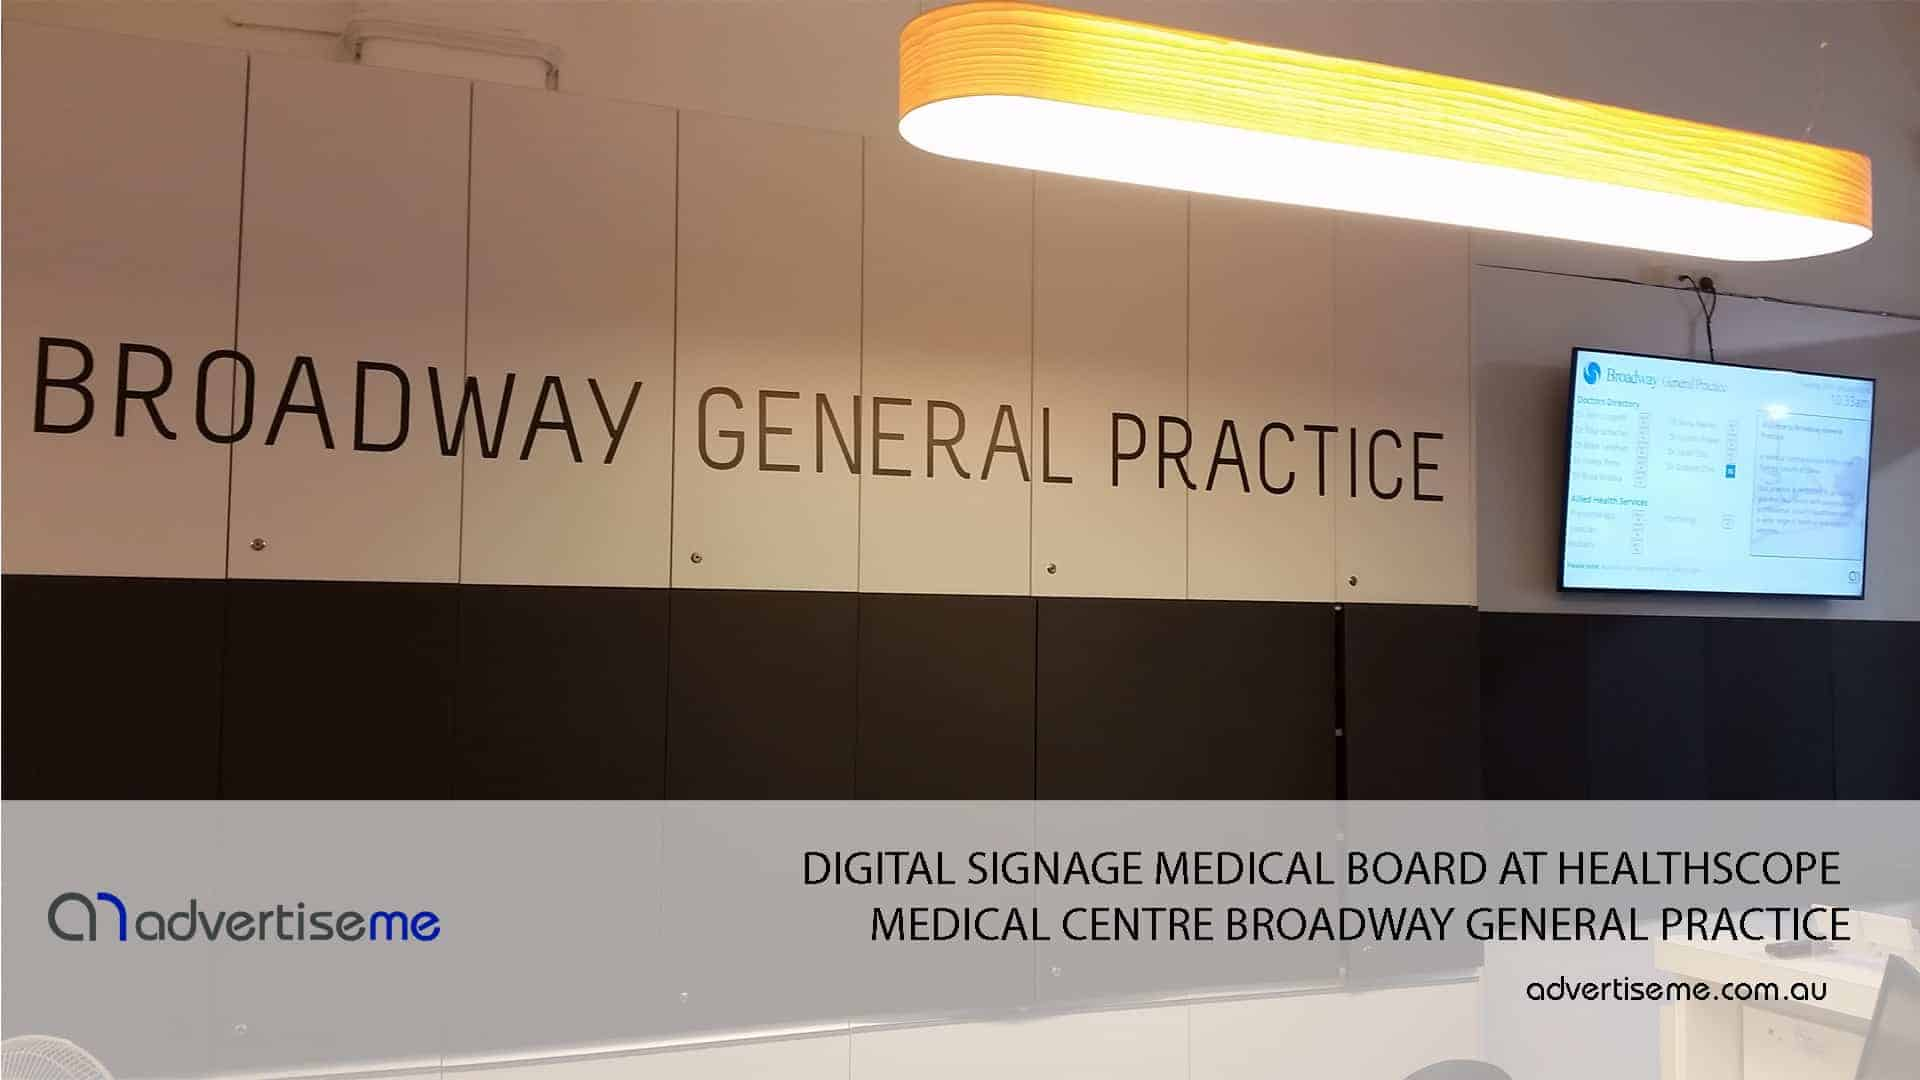 DIGITAL SIGNAGE MEDICAL BOARD AT HEALTHSCOPE MEDICAL CENTRE BROADWAY GENERAL PRACTICE 1